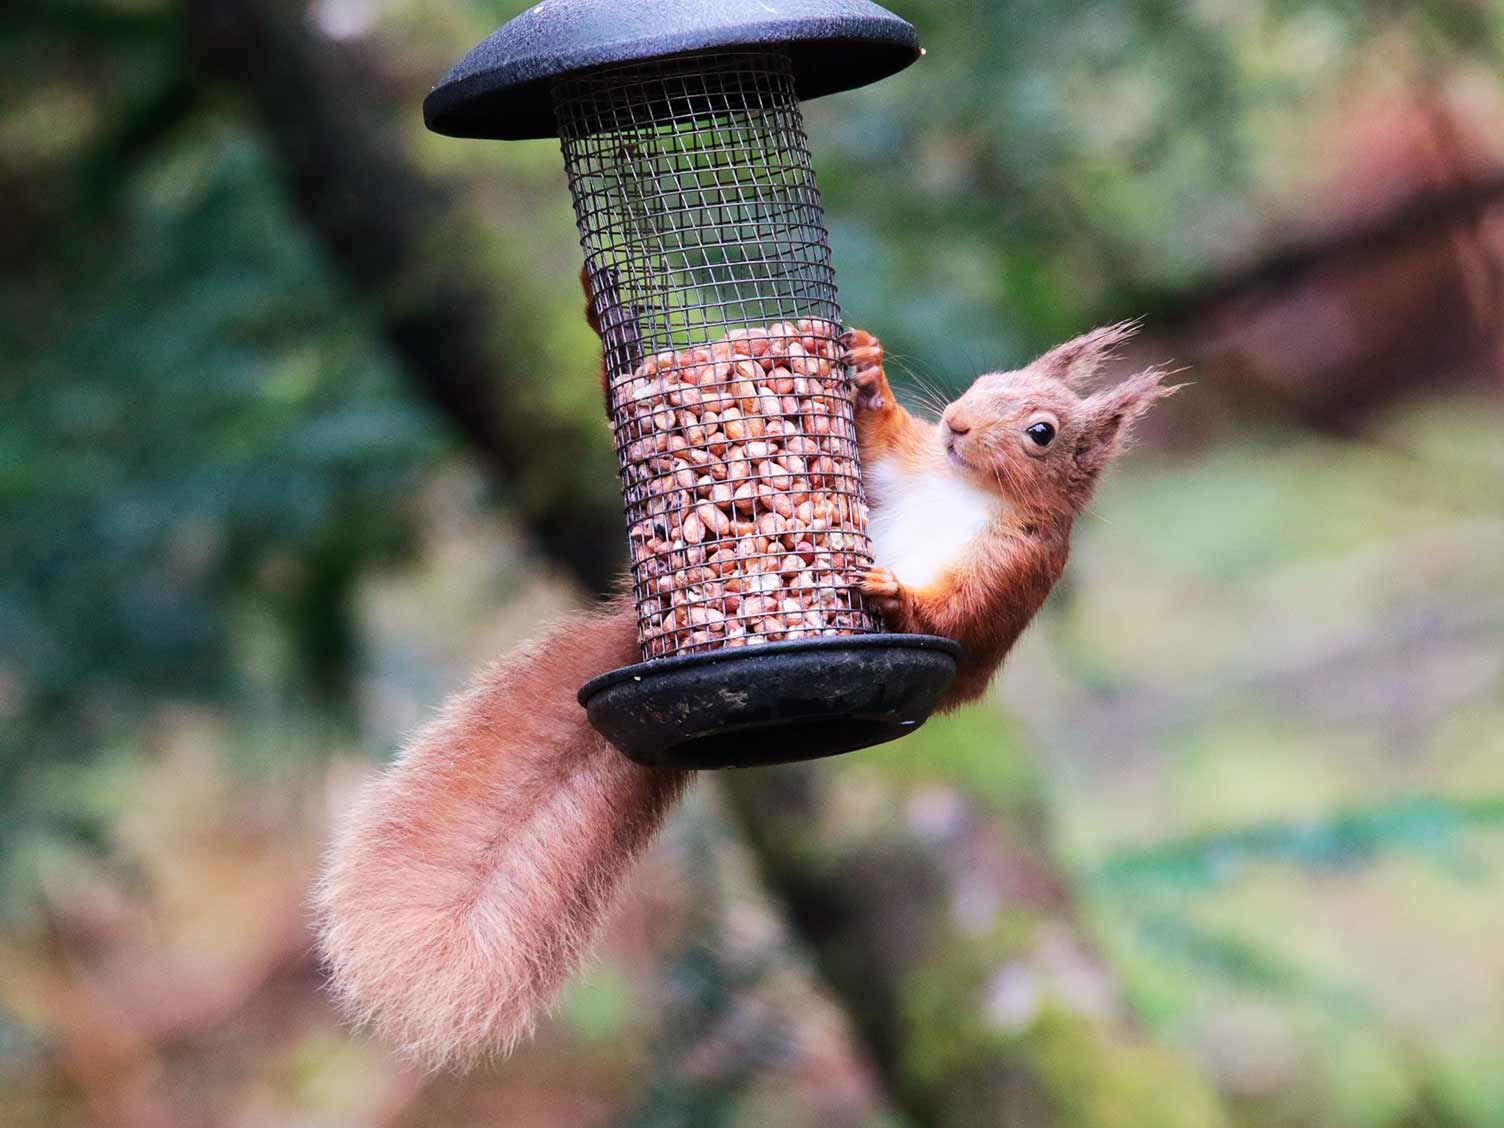 Red squirrel perched on a bird feeder